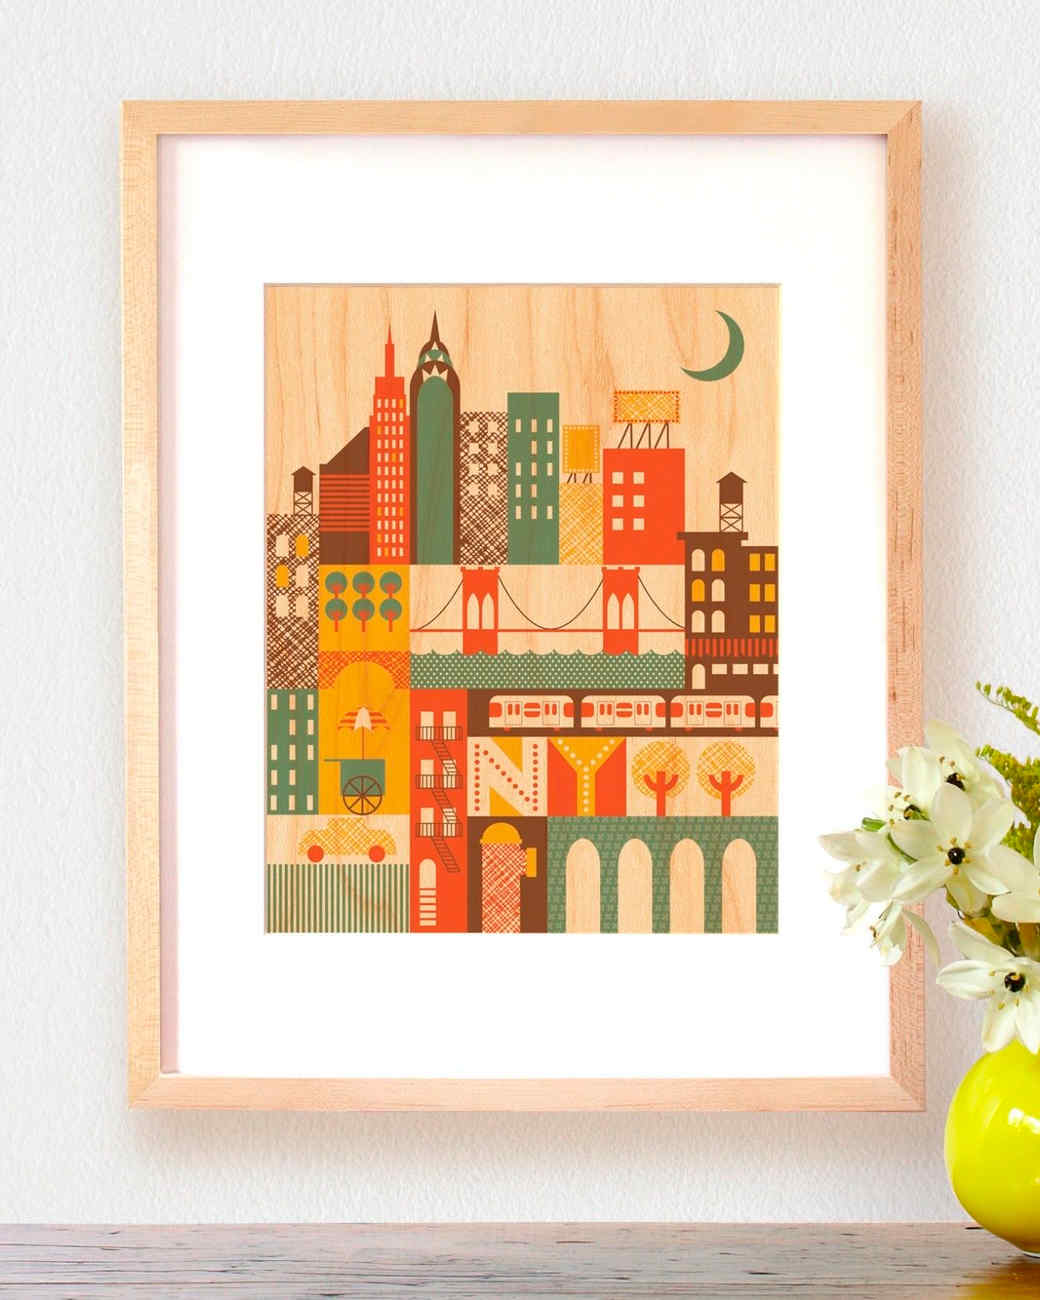 petit-collage-large-unframed-print-on-wood-nyc-0914.jpg